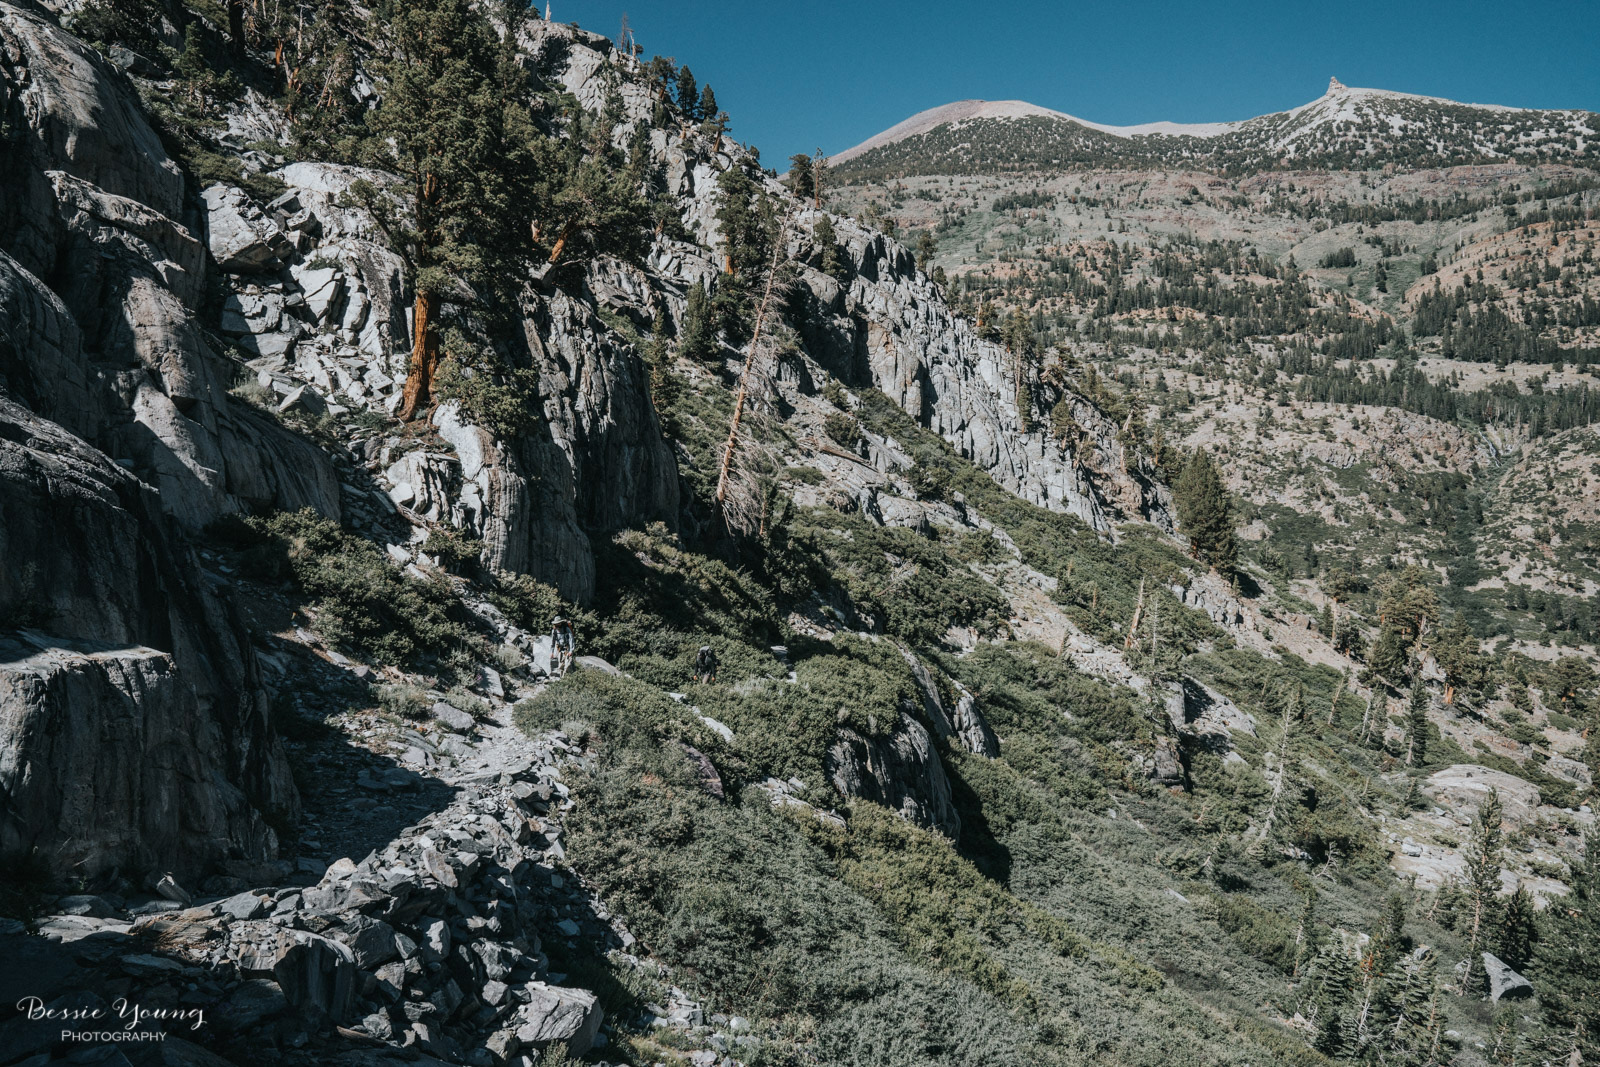 Ansel Adams Wilderness Backpacking day 1 2017 - Bessie Young Photography-9.jpg